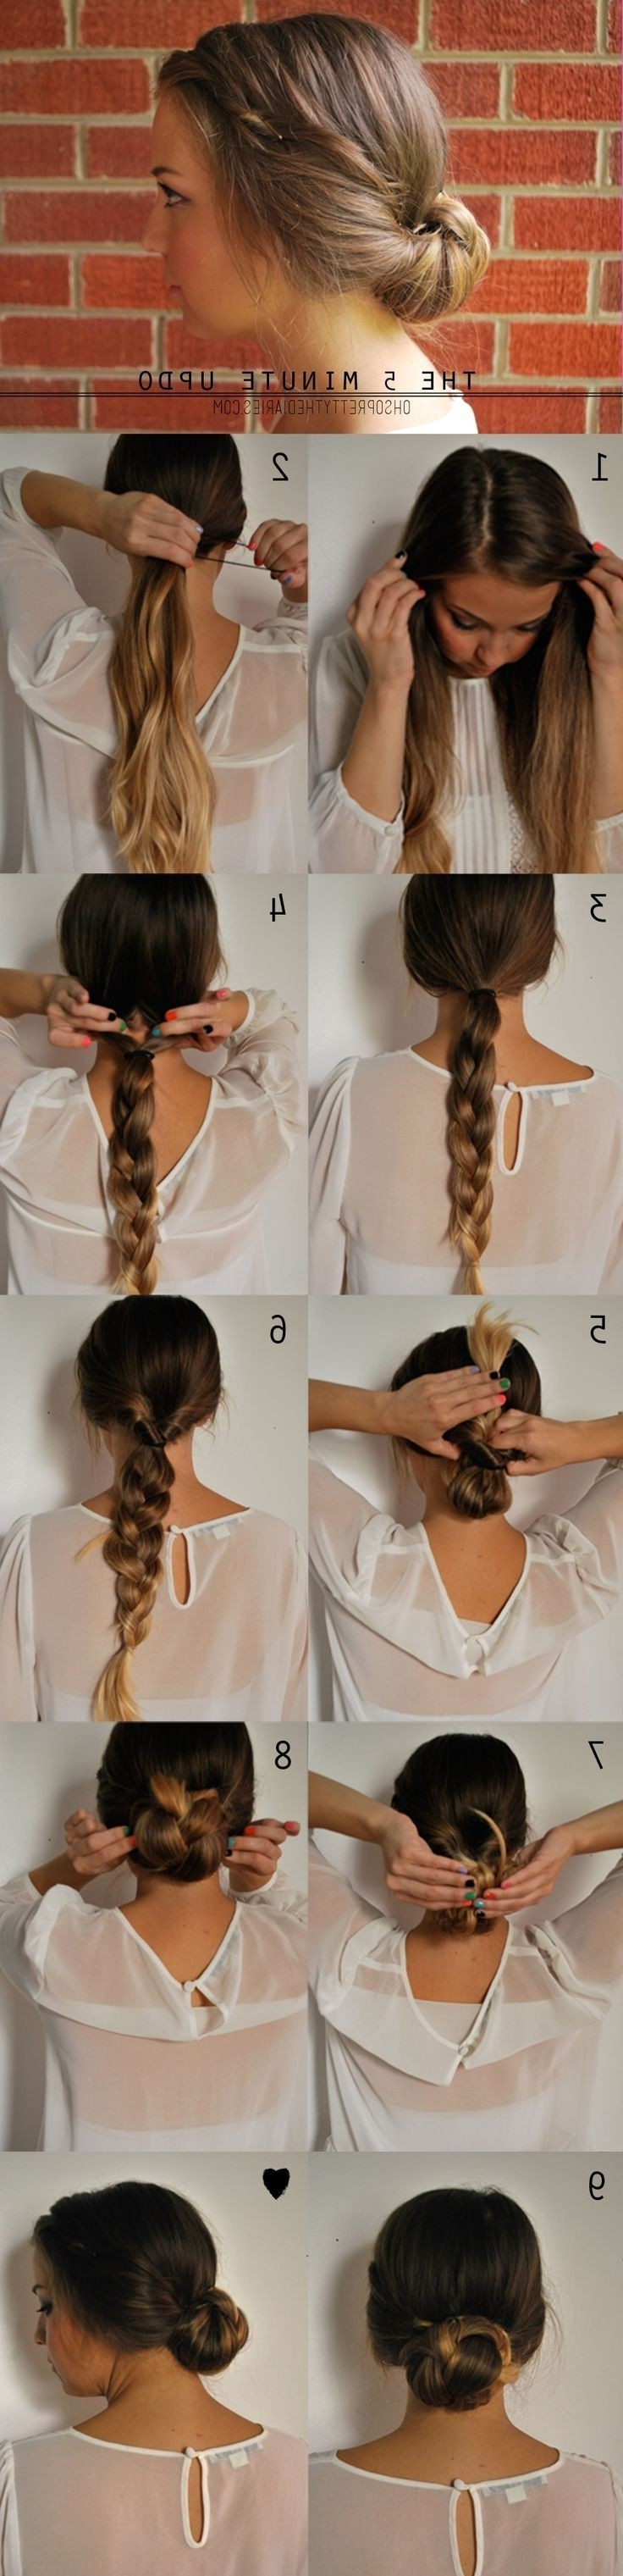 Most Popular Bouffant And Braid Ponytail Hairstyles Throughout 15 Cute Hairstyles: Step By Step Hairstyles For Long Hair – Popular (View 15 of 20)